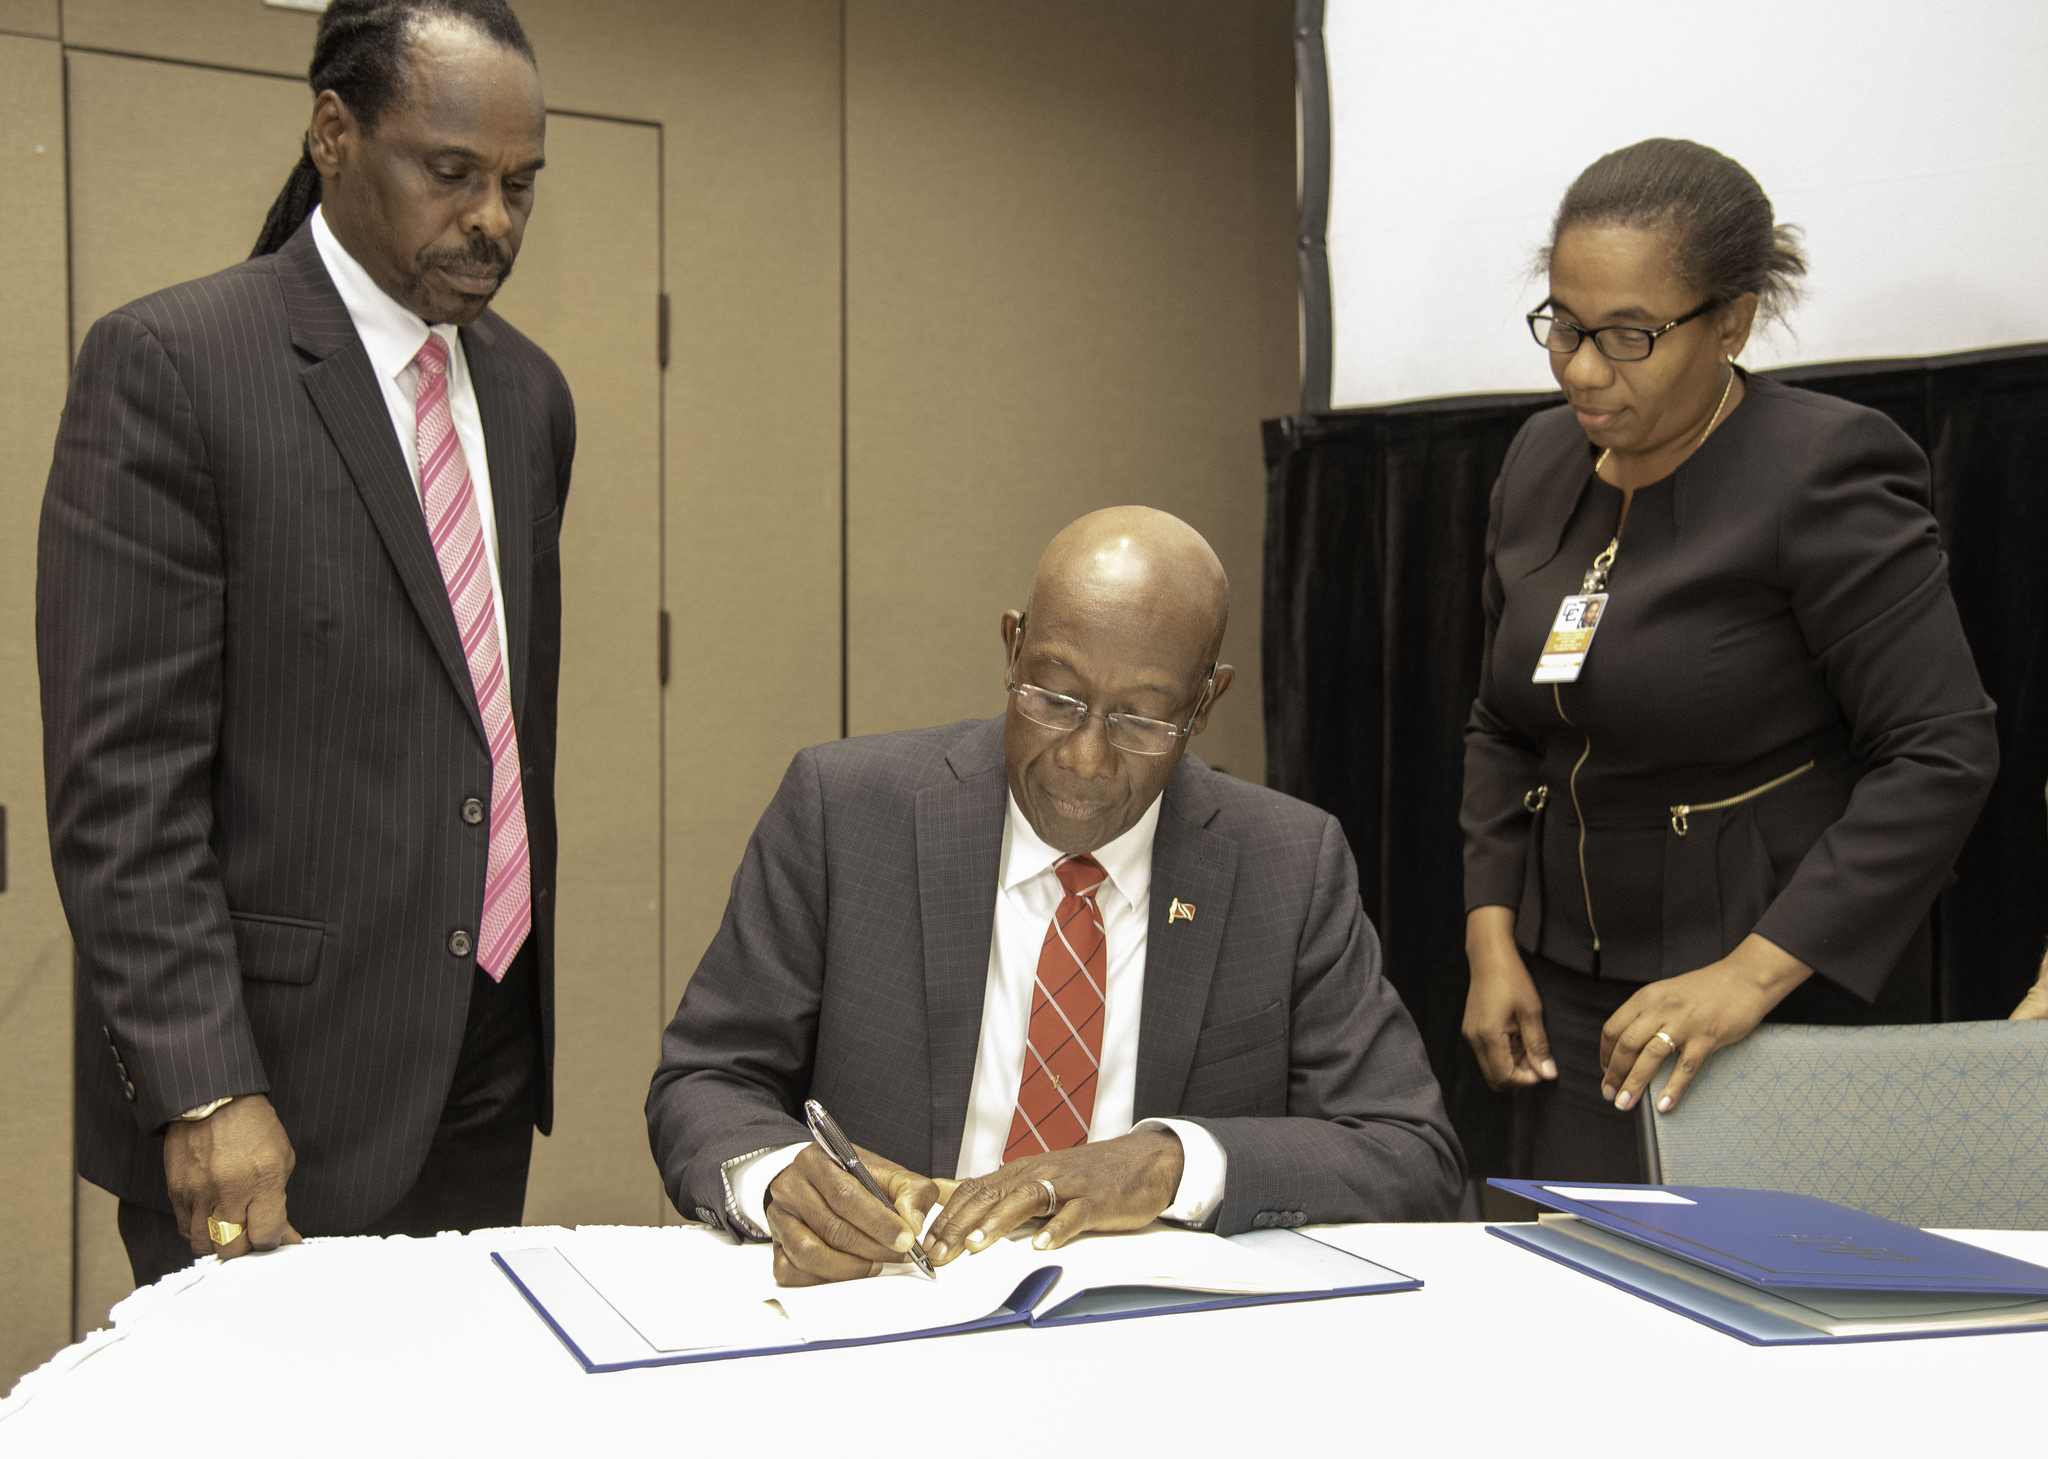 Prime Minister Rowley signs agreements